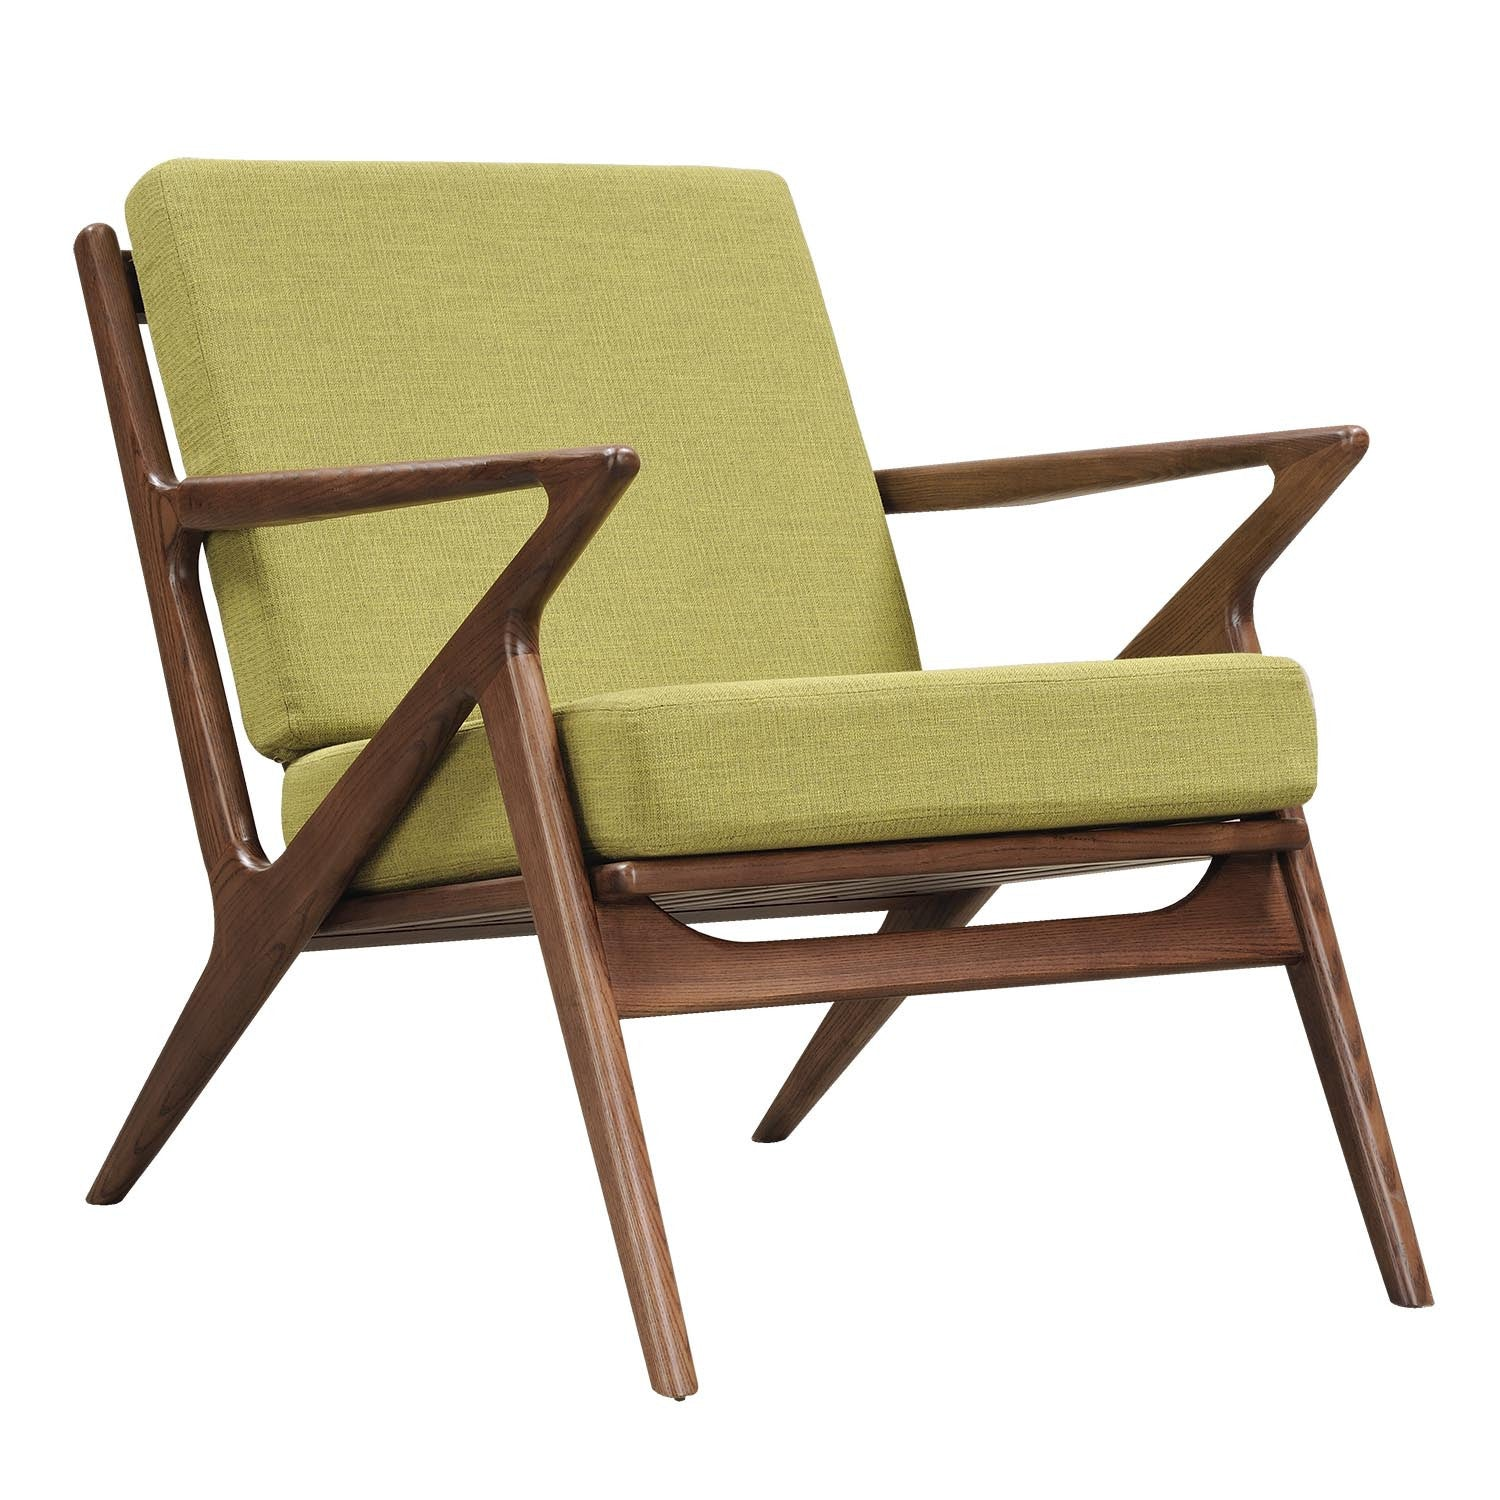 Jet Accent Chair Walnut Wood Finish CHOICE OF COLORS – Apt2B